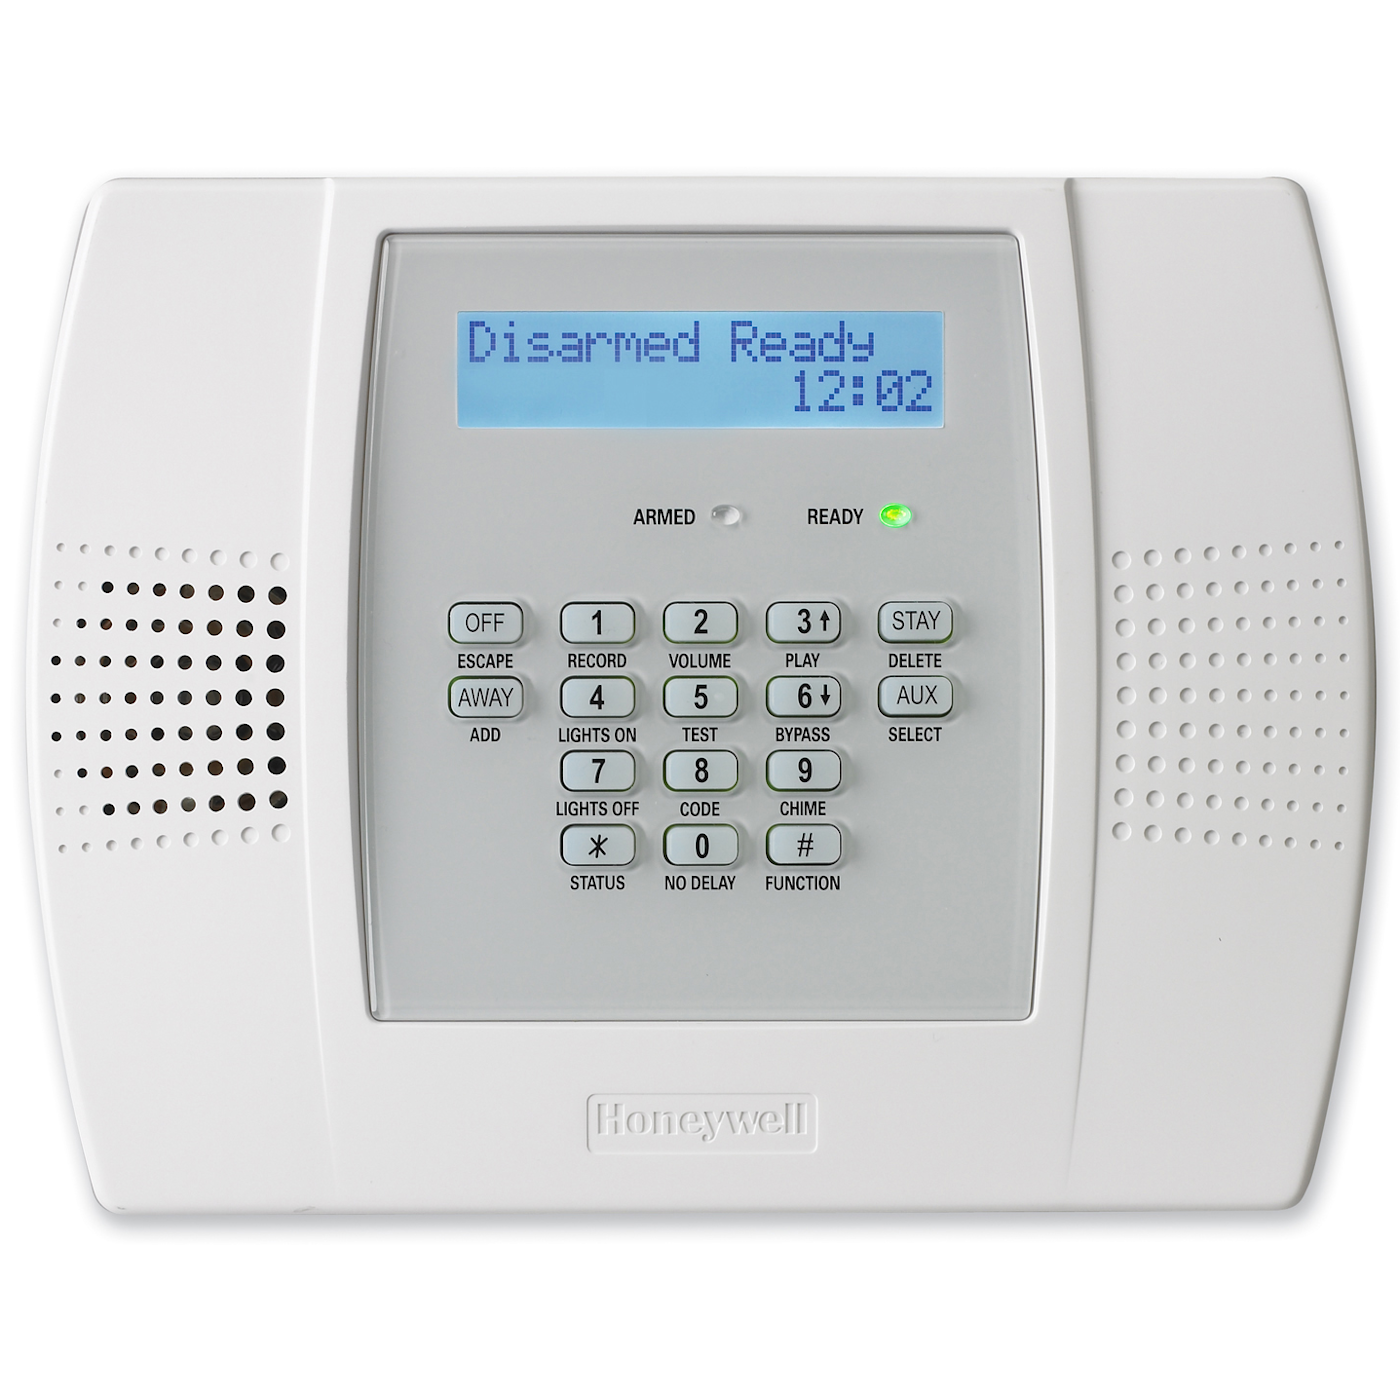 l3000 honeywell lynx plus wireless alarm system control panel rh geoarm com Honeywell 3000 Controller Manual Honeywell 3000 Controller Manual